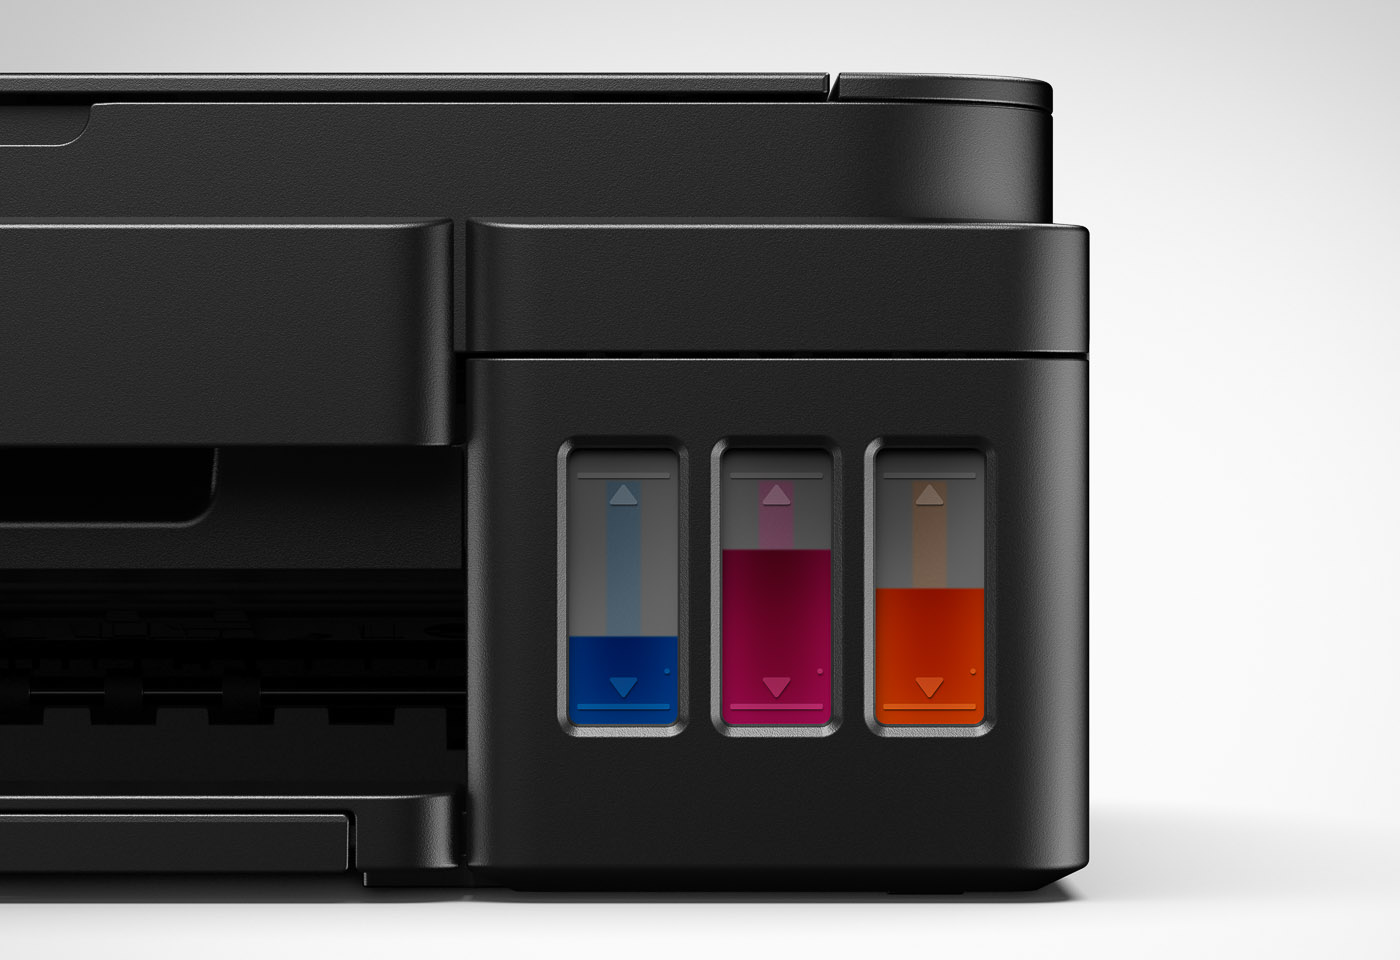 pixma g2600 built-in ink tanks